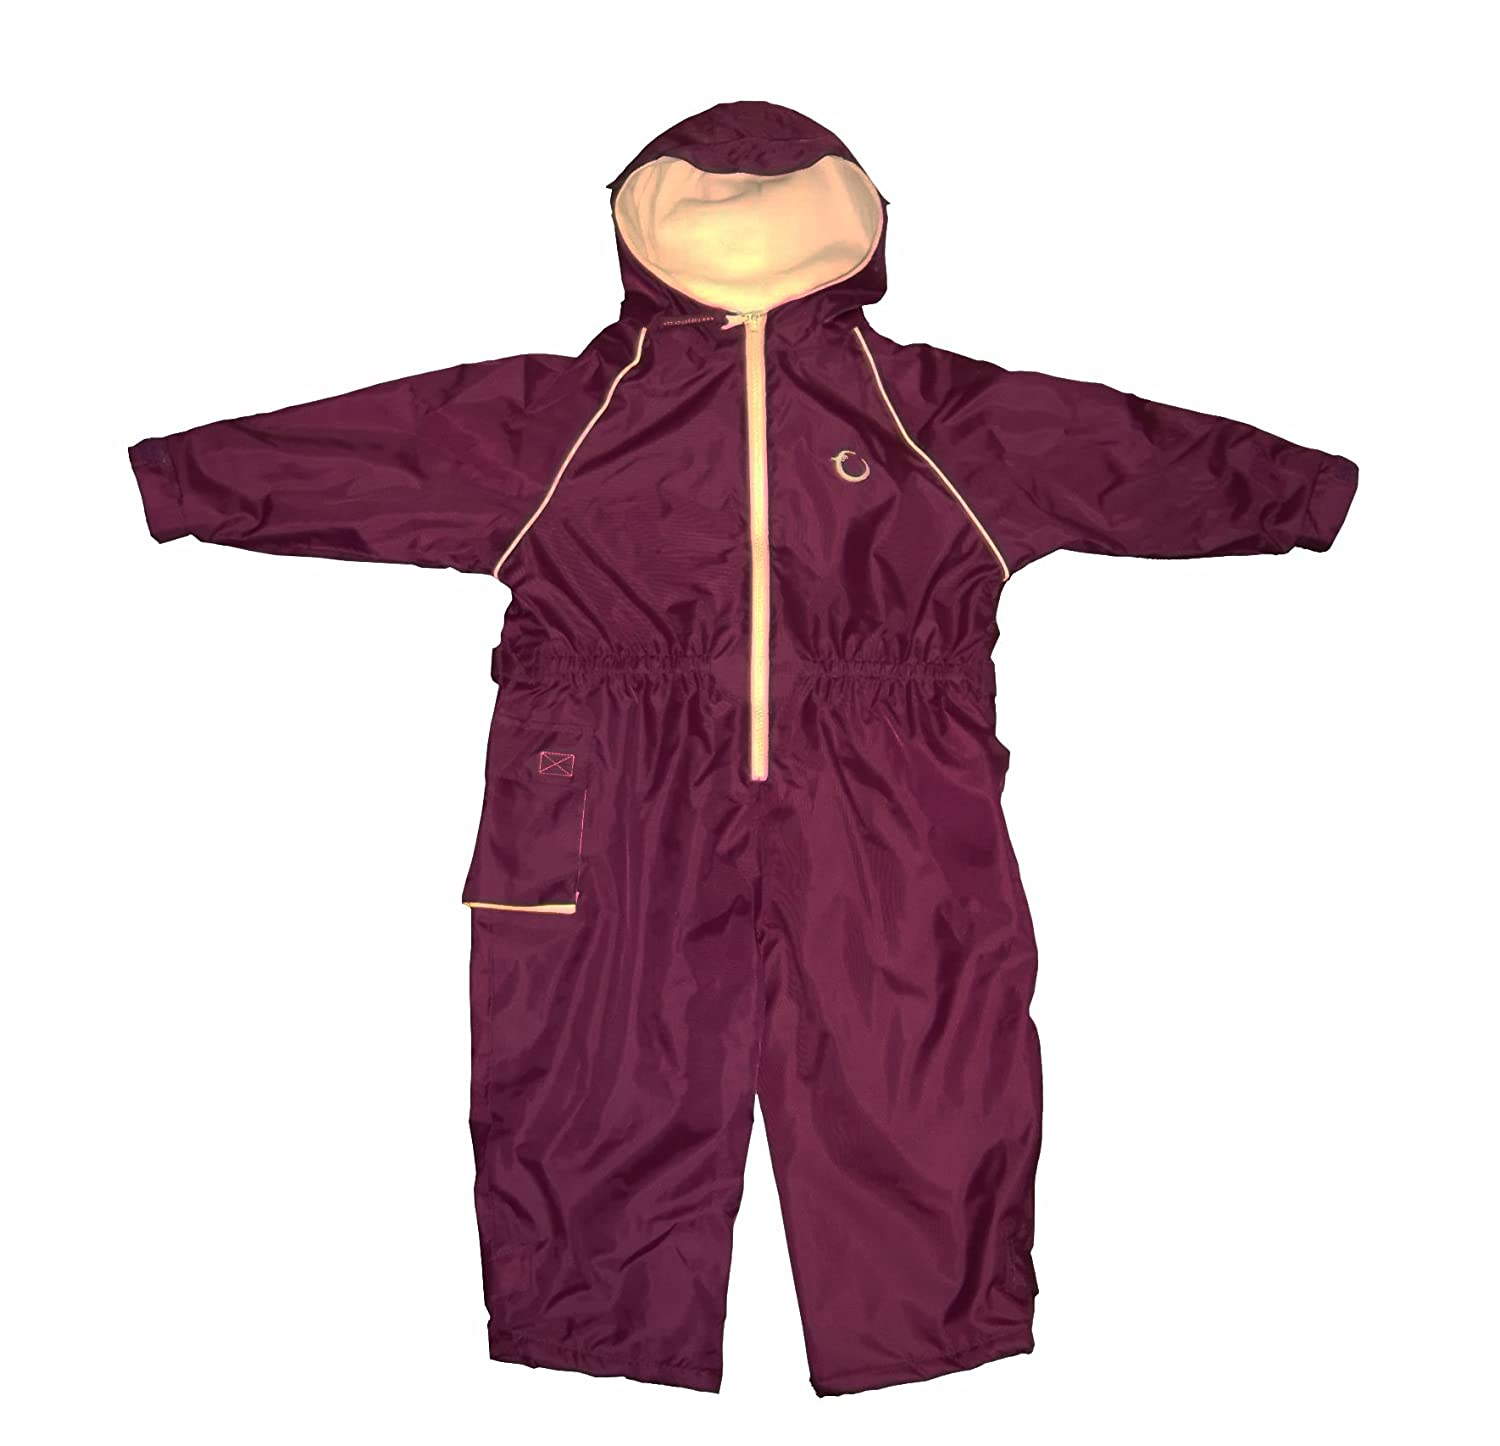 Hippychick Fleece Lined Waterproof All-in-One Suit - Burgundy/Sand, 3-4 Years HWNFBS3-4